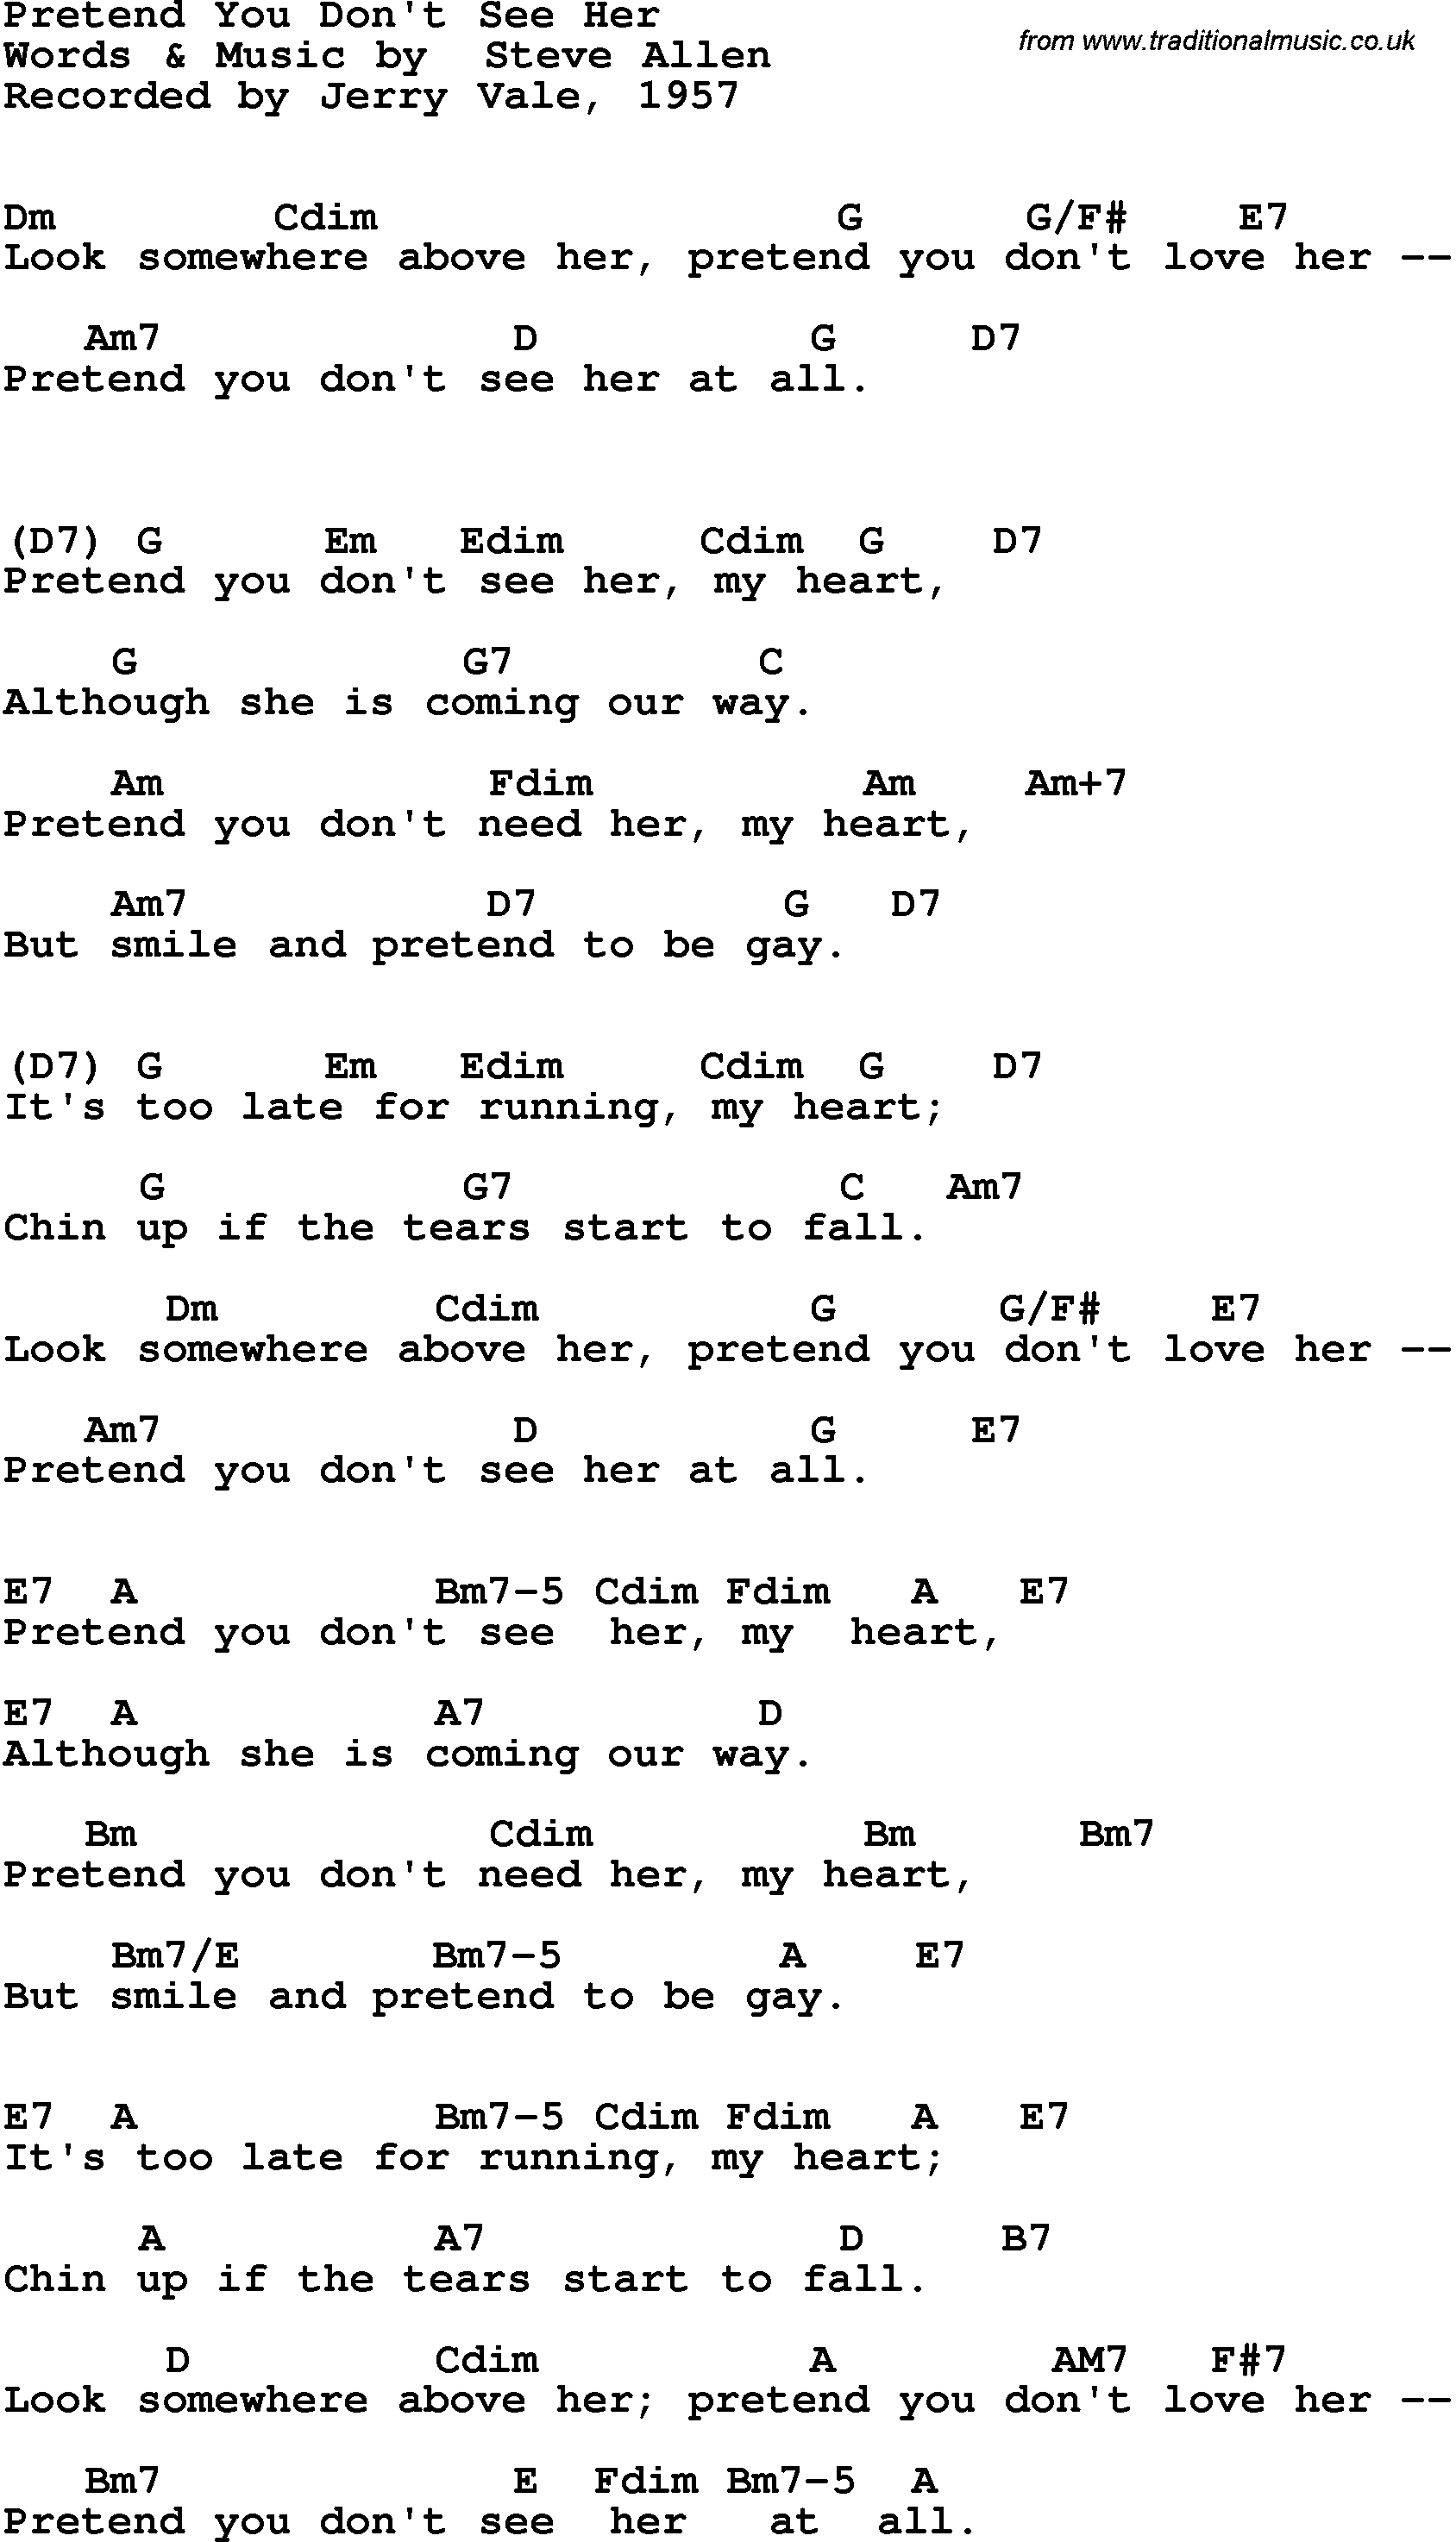 Song Lyrics With Guitar Chords For Pretend You Dont See Her Jerry